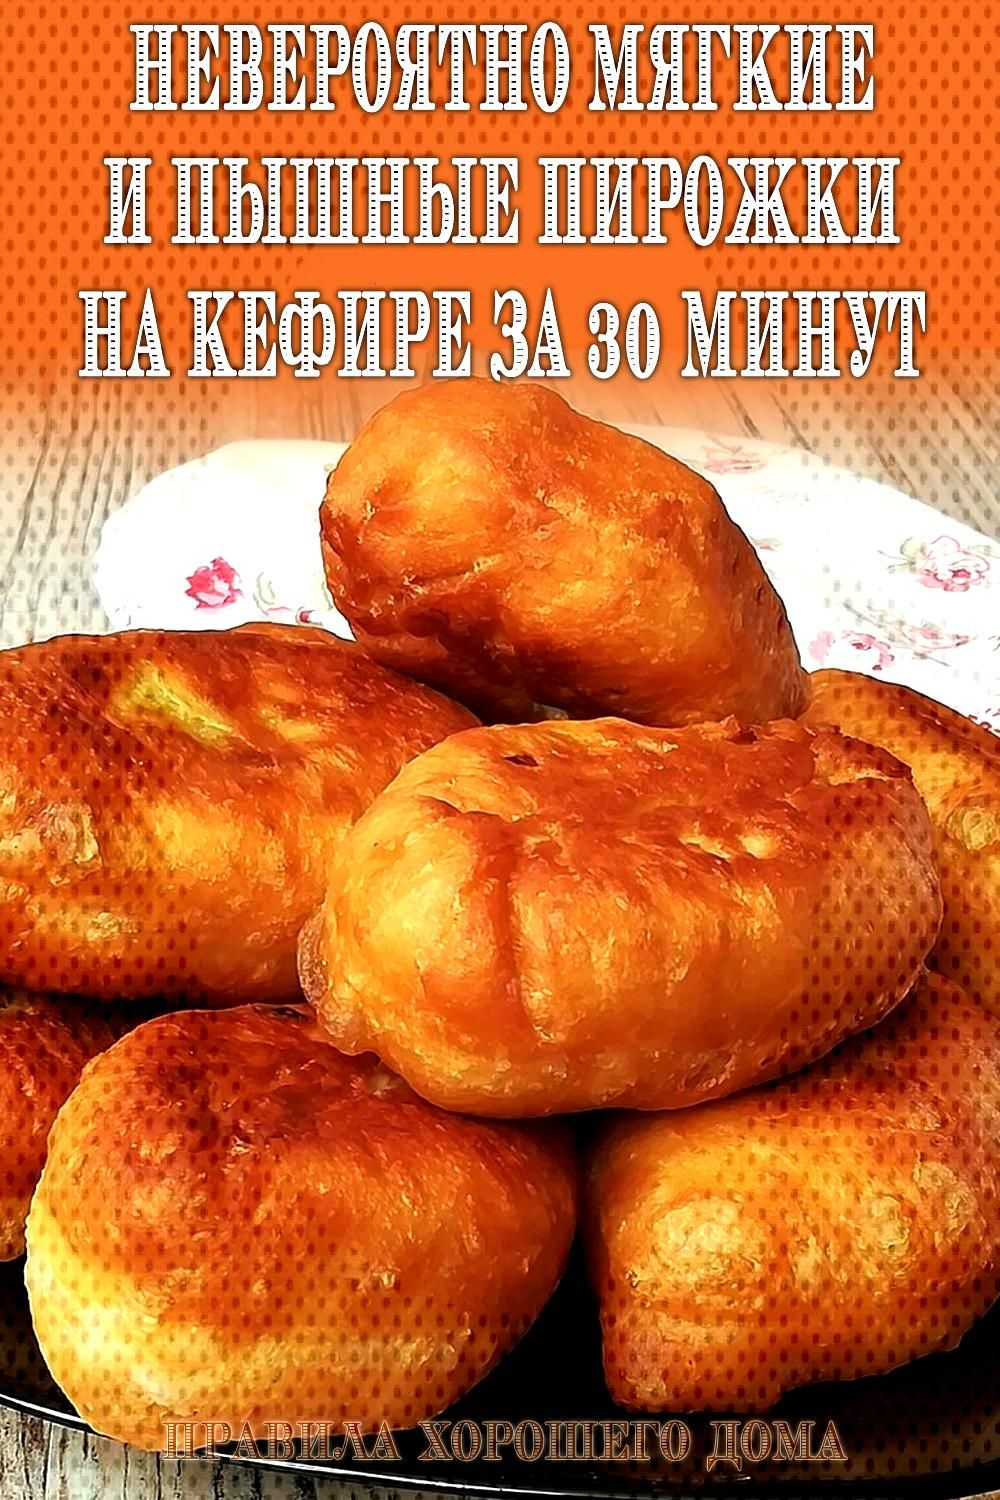 soft and lush kefir pies in 30 minutes - soft and lush kefir pies in 30 minutes – -